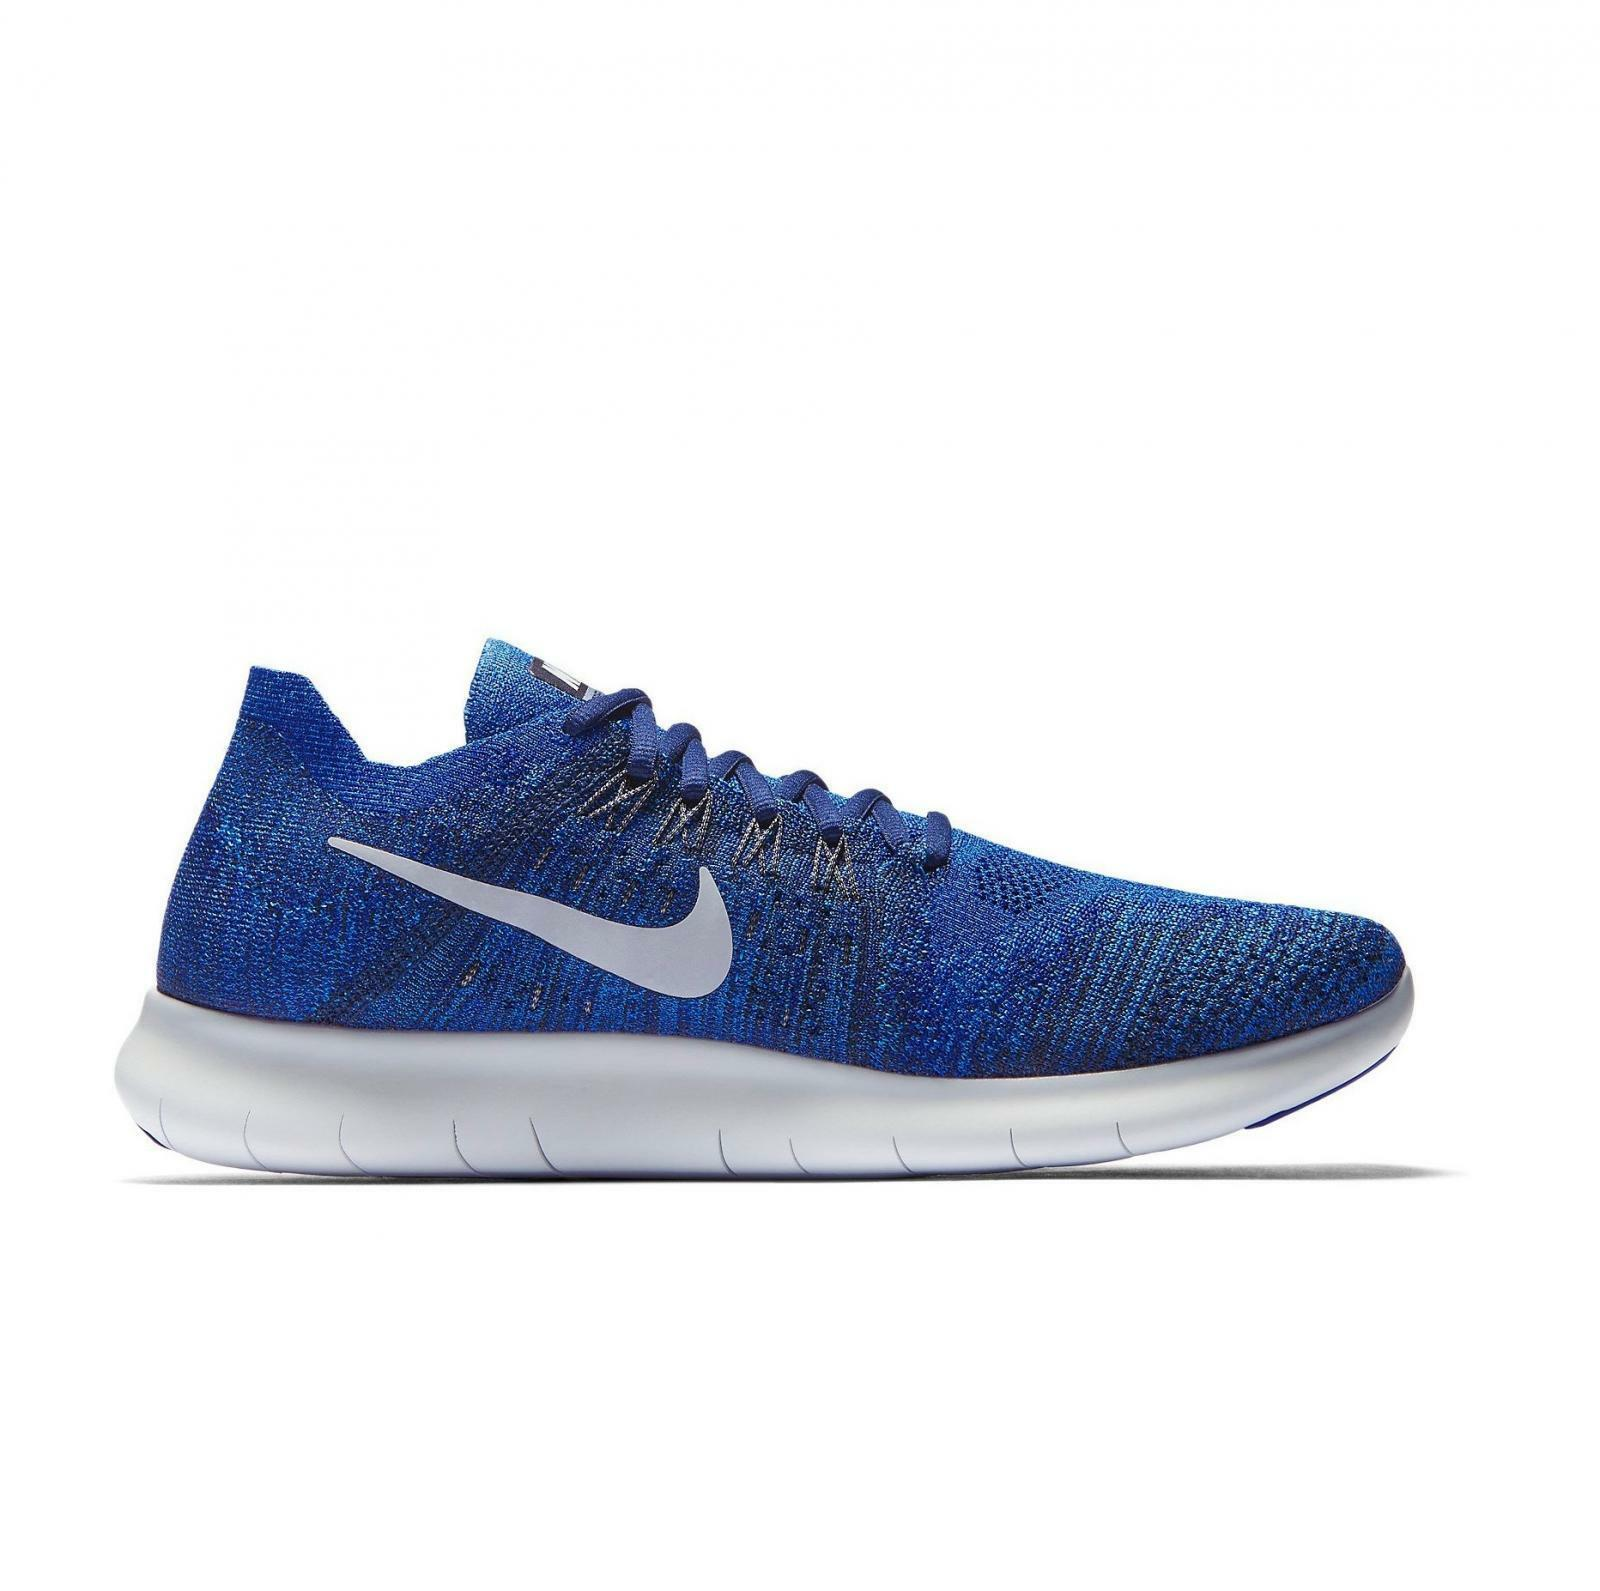 Homme NIKE Libre RN FLYKNIT 2017 Deep Royal FonctionneHommest paniers 880843 405